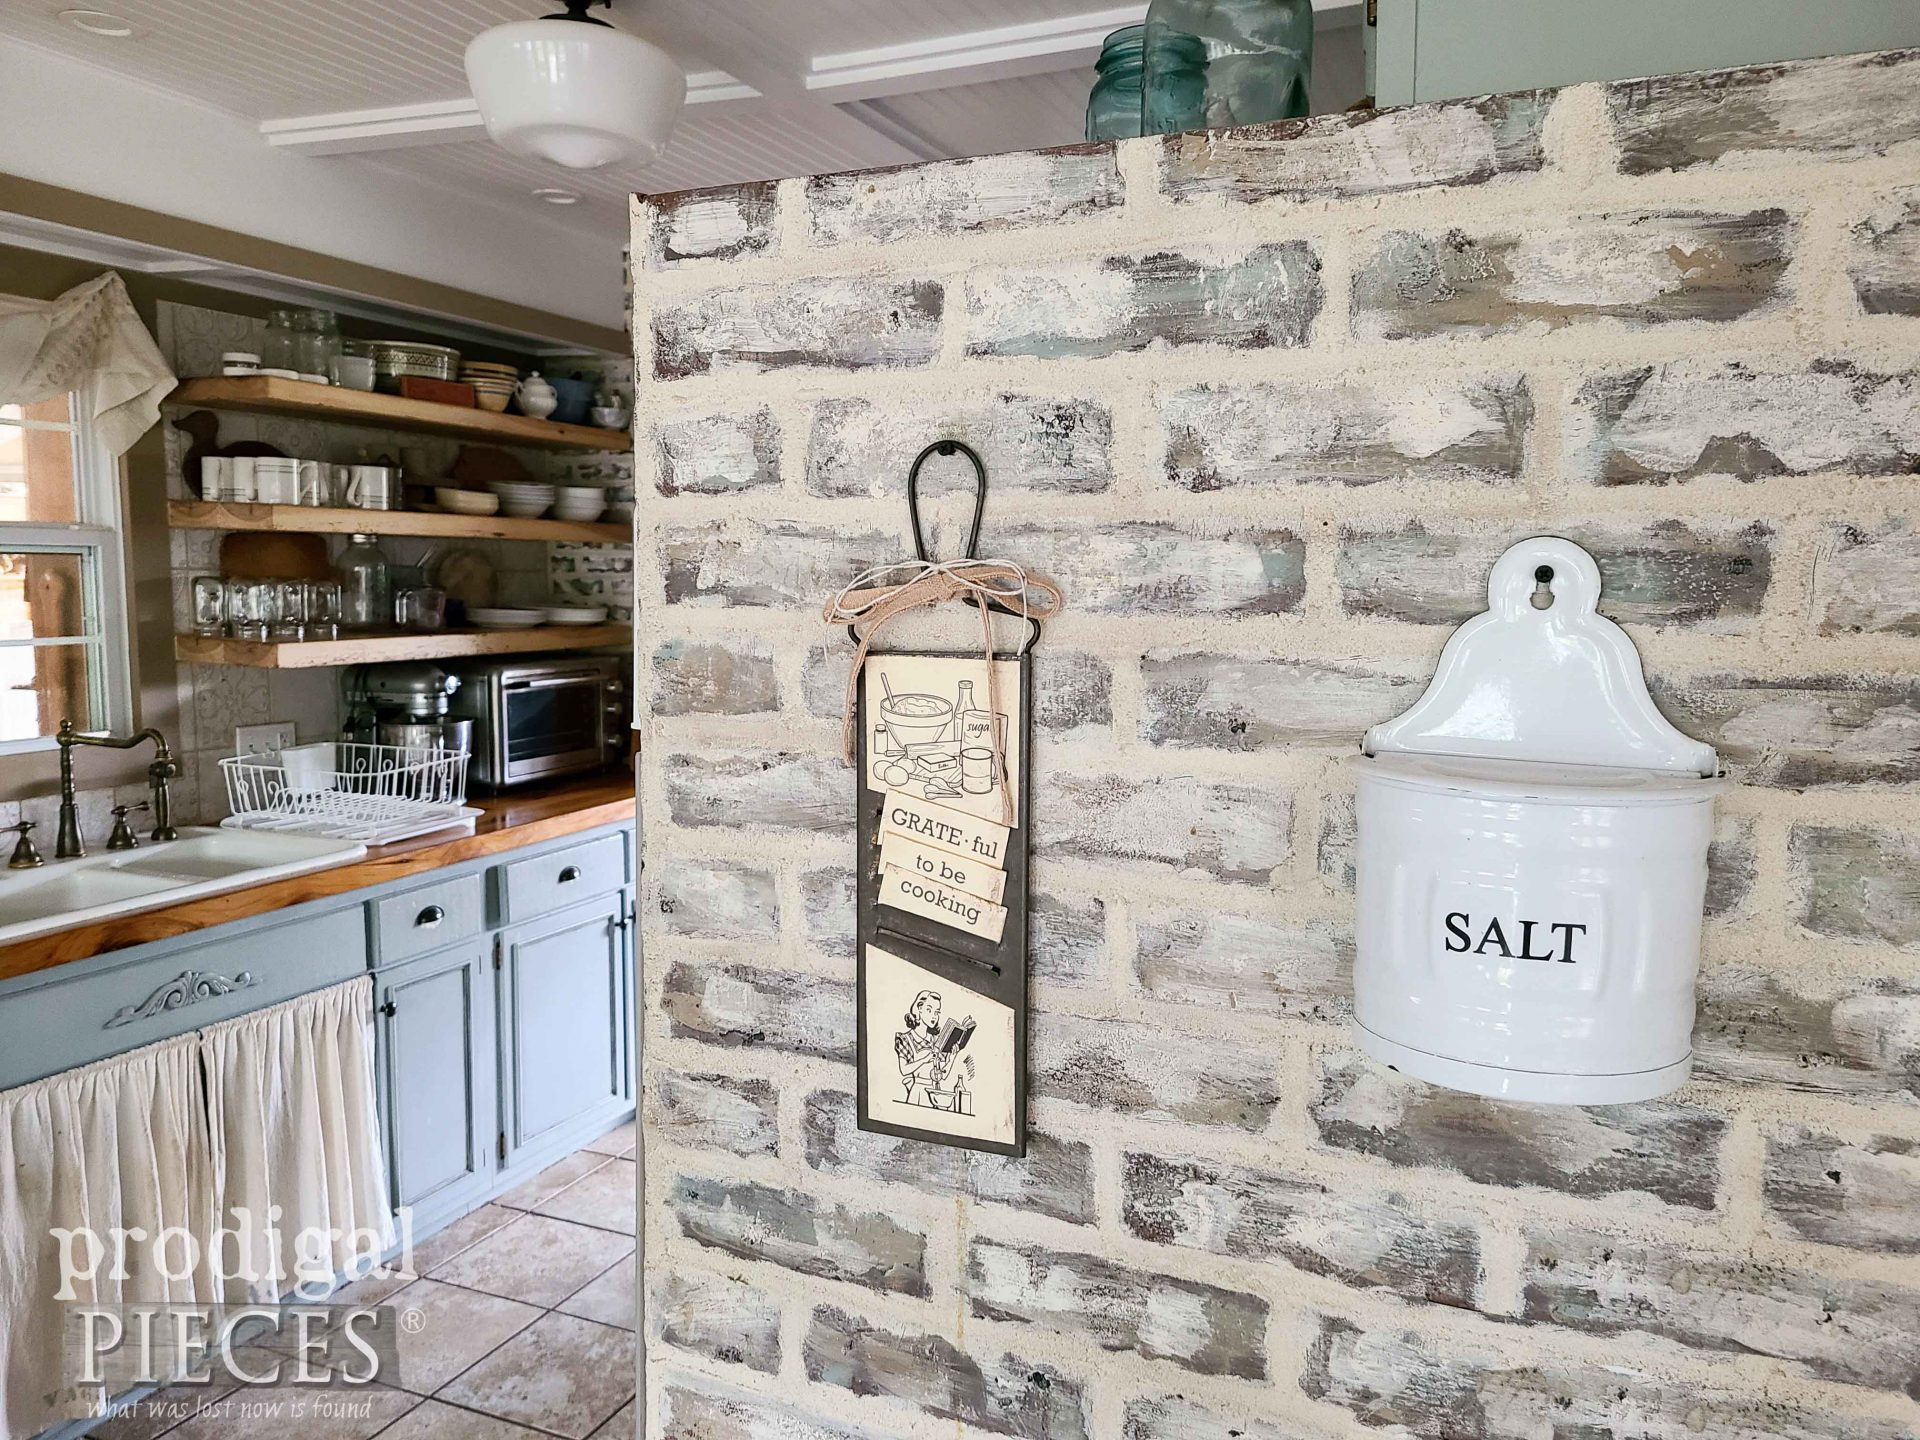 Farmhouse Rustic Chic Home Decor with Upcycled Grater by Larissa of Prodigal Pieces   prodigalpieces.com #prodigalpieces #farmhouse #diy #home #kitchen